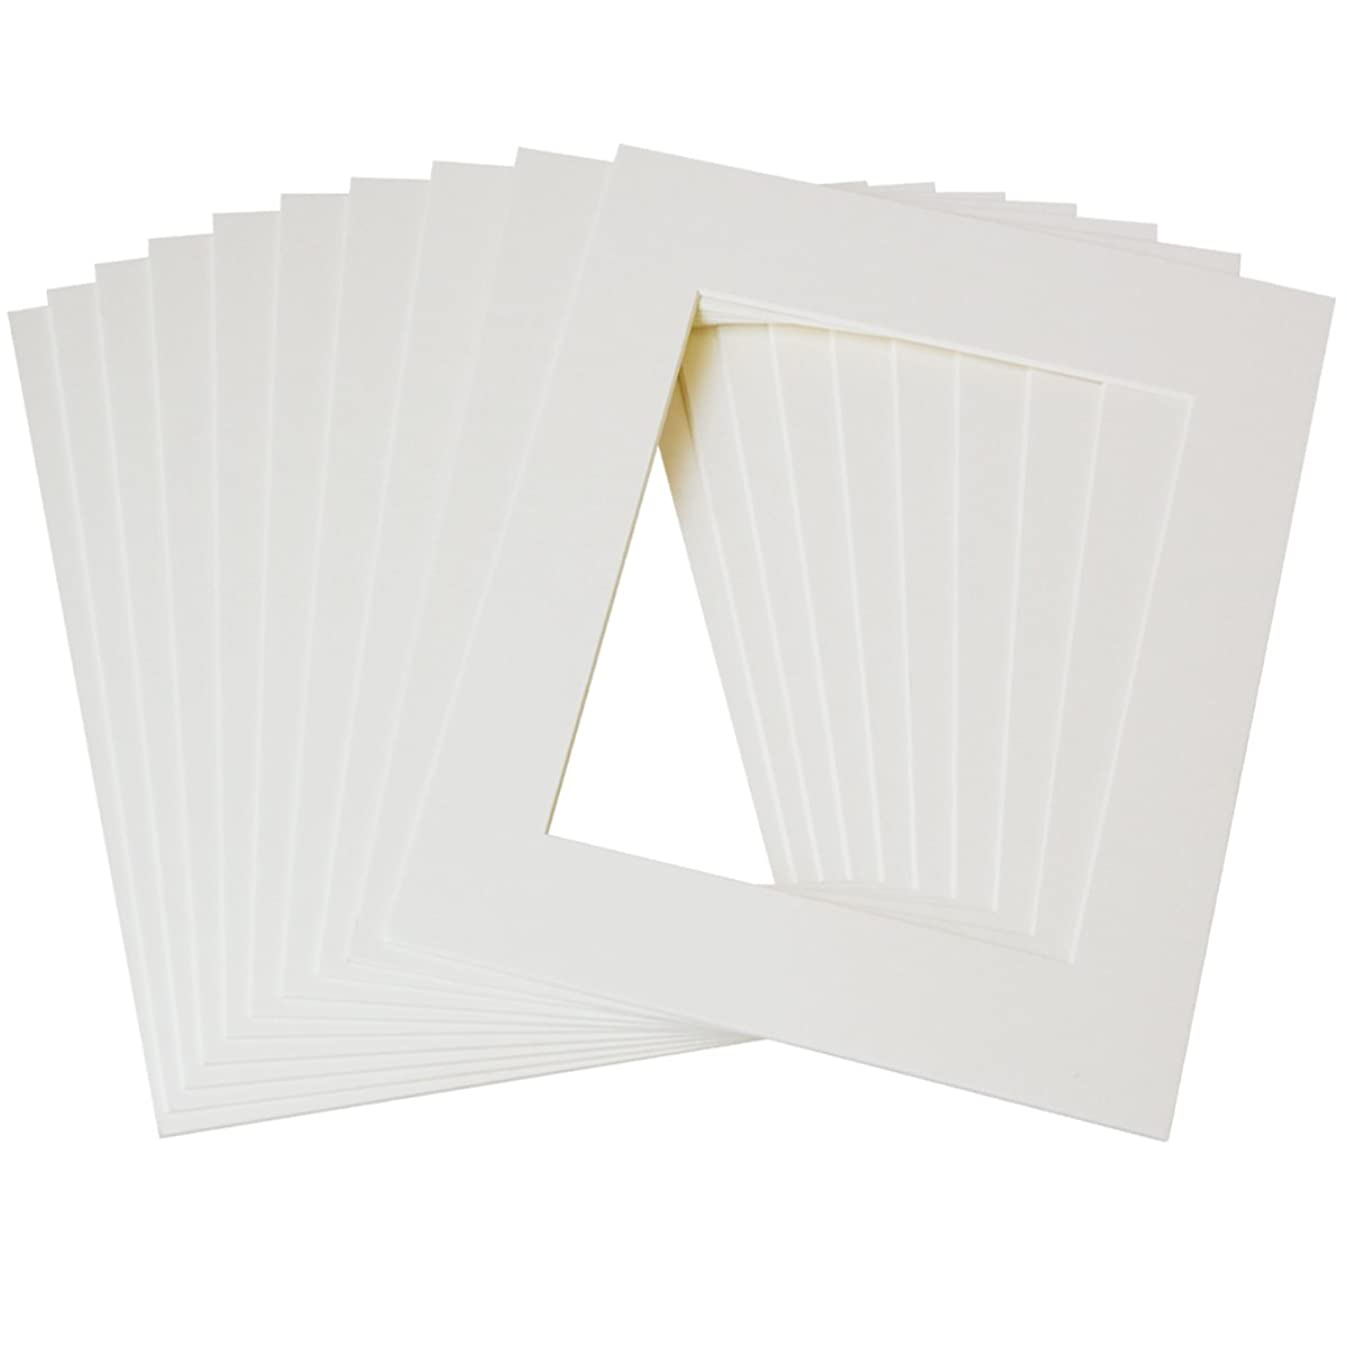 Betus 11x14 Cream White Picture Mats, White Core Bevel Cut for 8x10 Pictures - Pack of 10